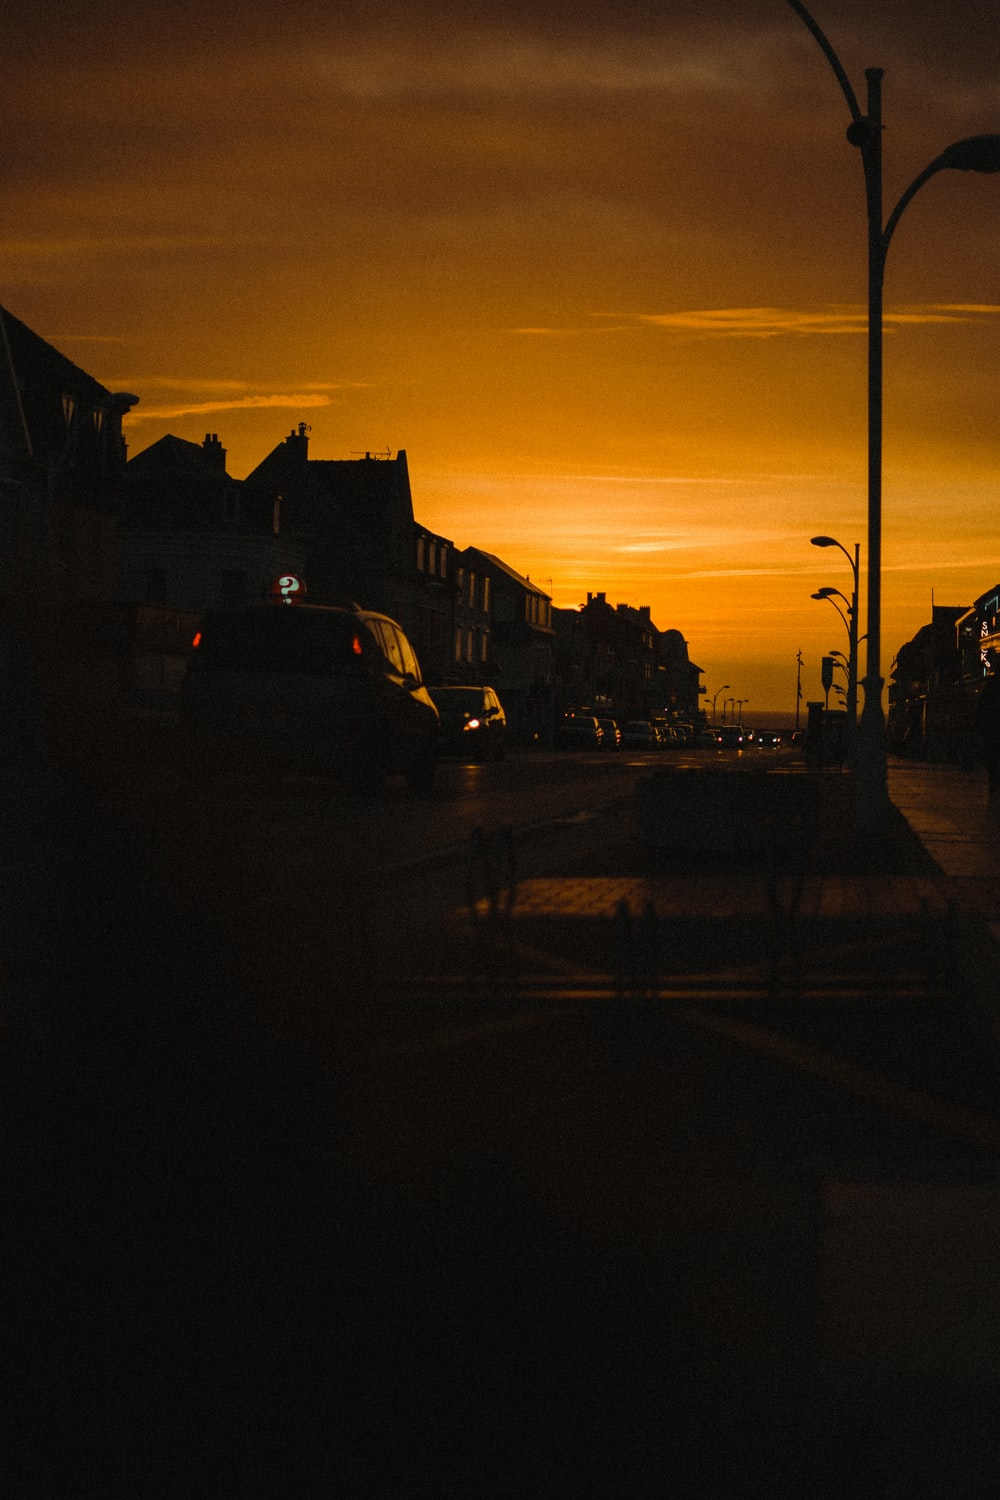 cars parked on side of the road during sunset